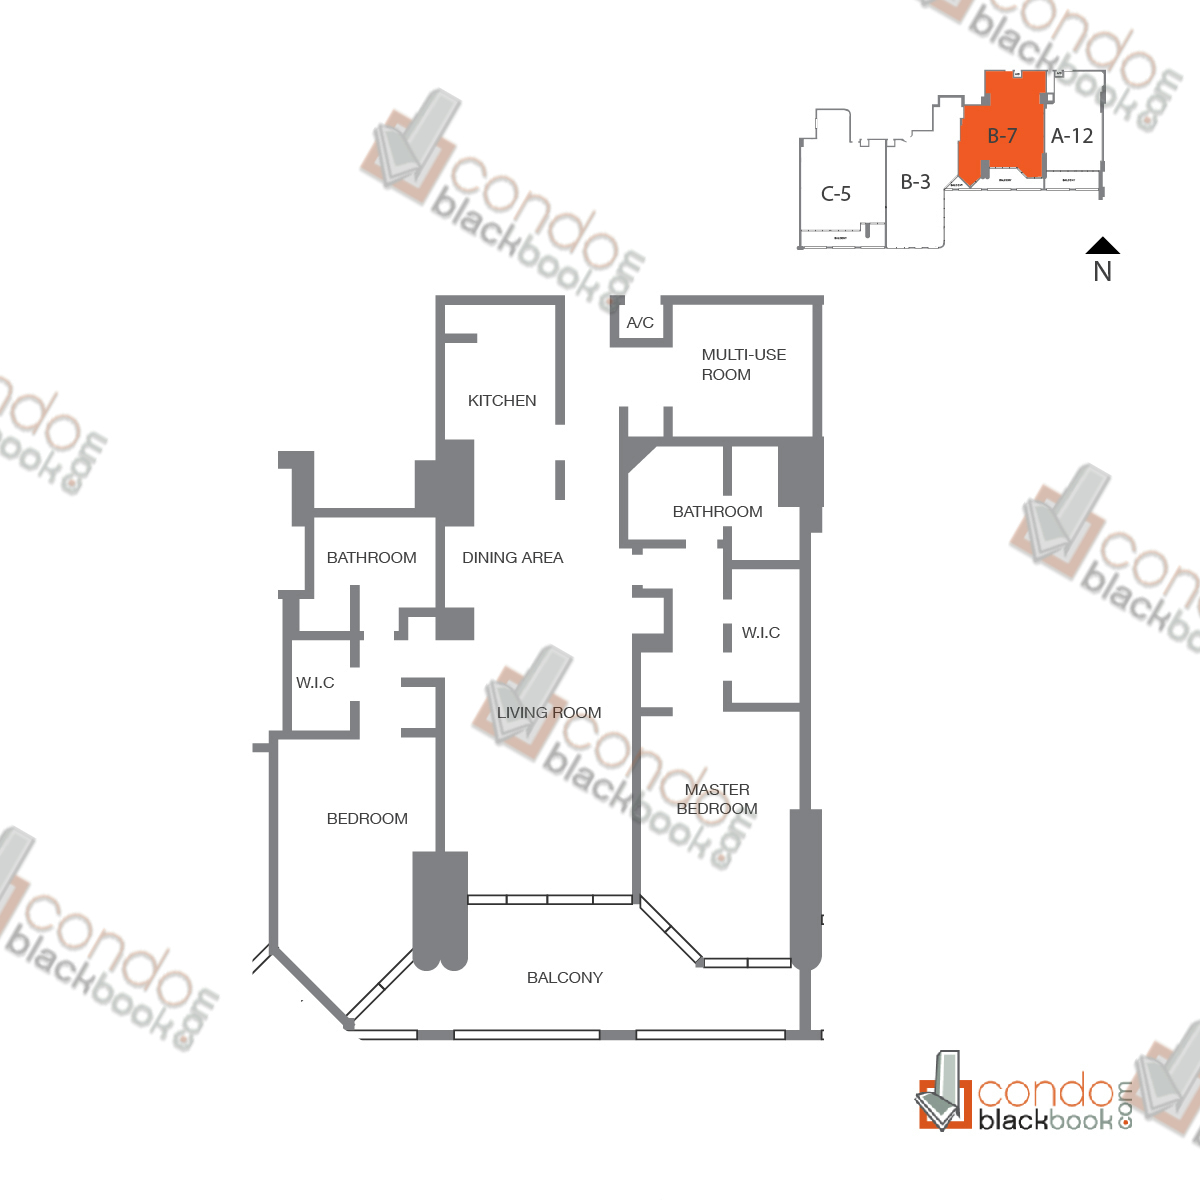 Floor plan for The Grand Arts & Entertainment District Miami, model Unit A-1041, line A-1041, 1/1.5 bedrooms, 1,154 sq ft